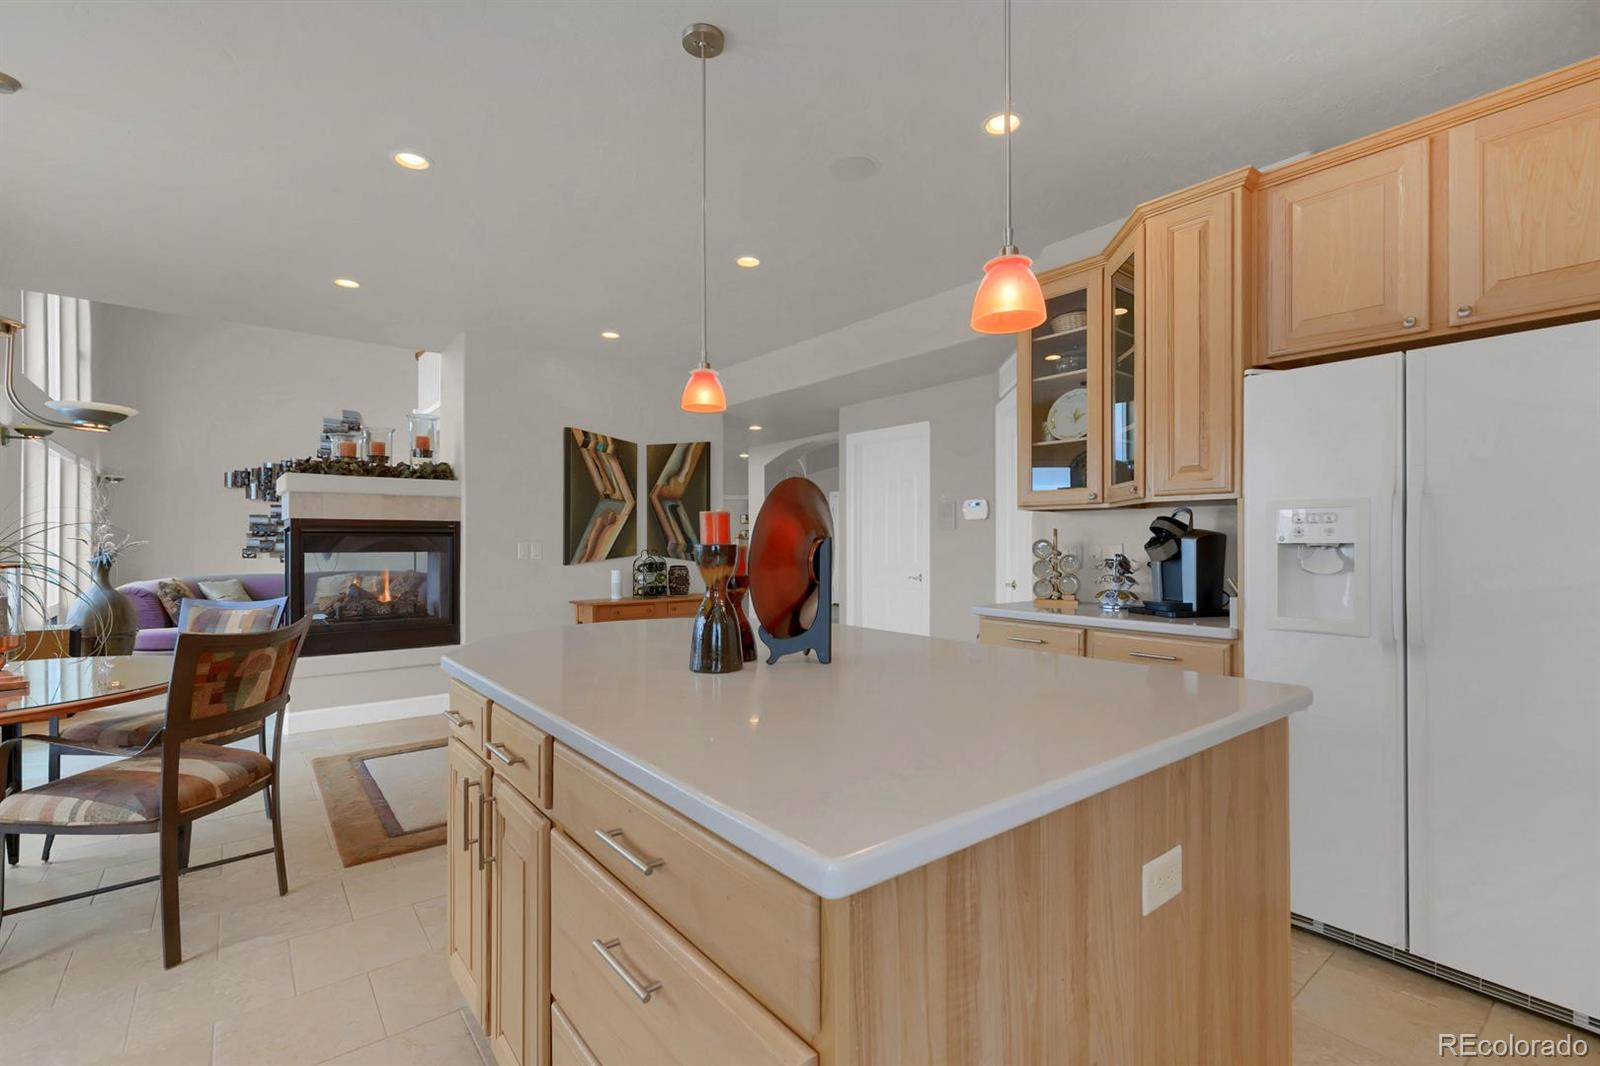 MLS# 5159811 - 15 - 207 Green Rock Place, Monument, CO 80132